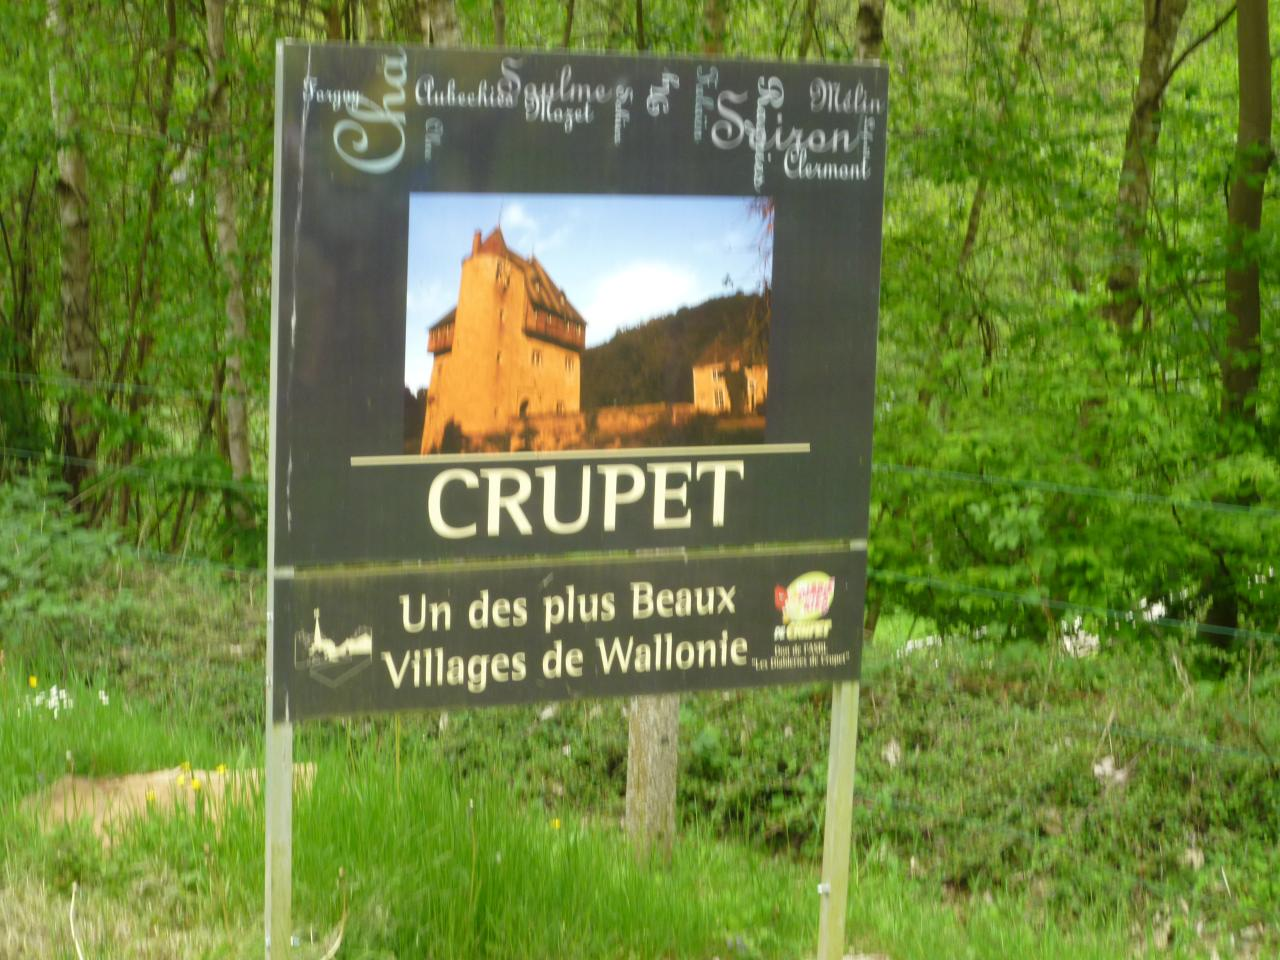 Crupet...un des plus beaux villages de Wallonie